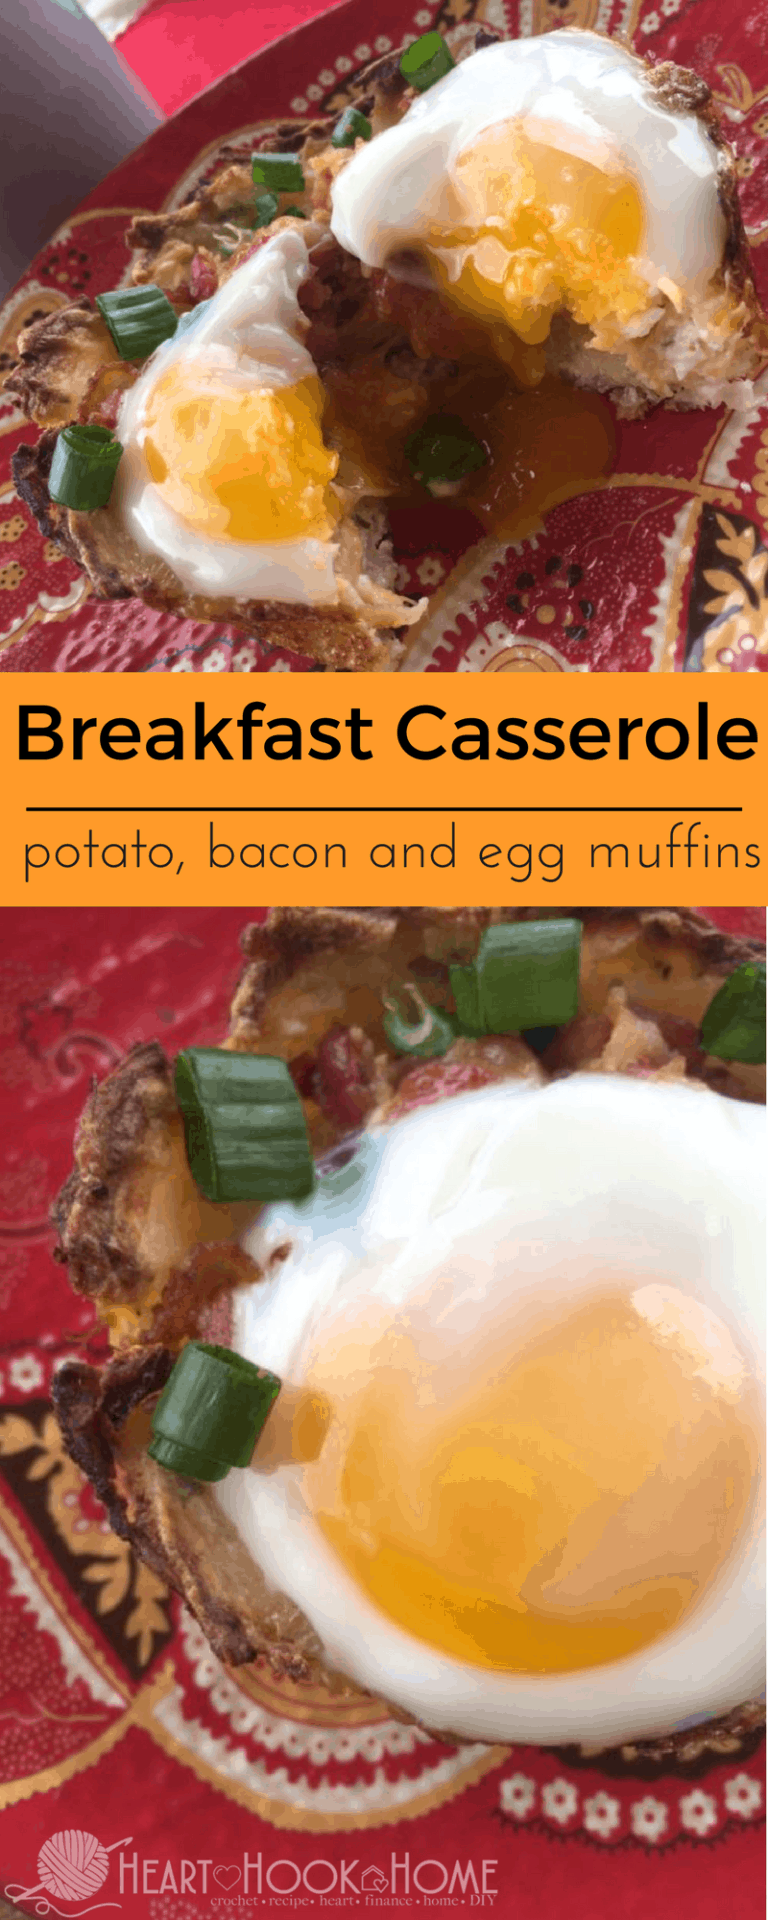 Breakfast Casserole in a Cup